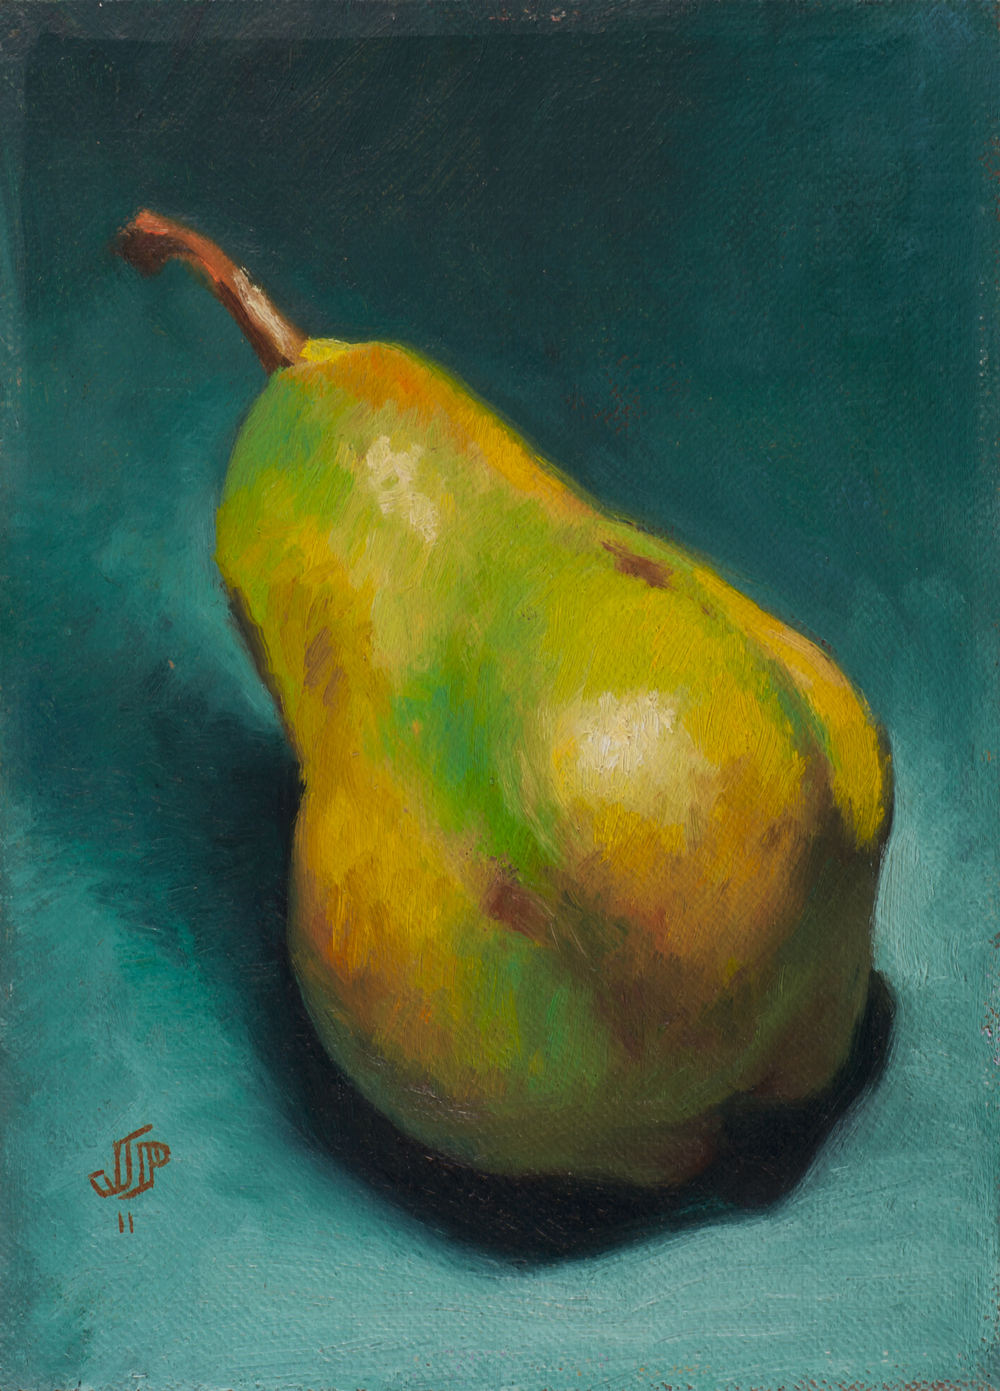 """Diagonal Pear"" (2011), oil on panel, 6"" x 8"""